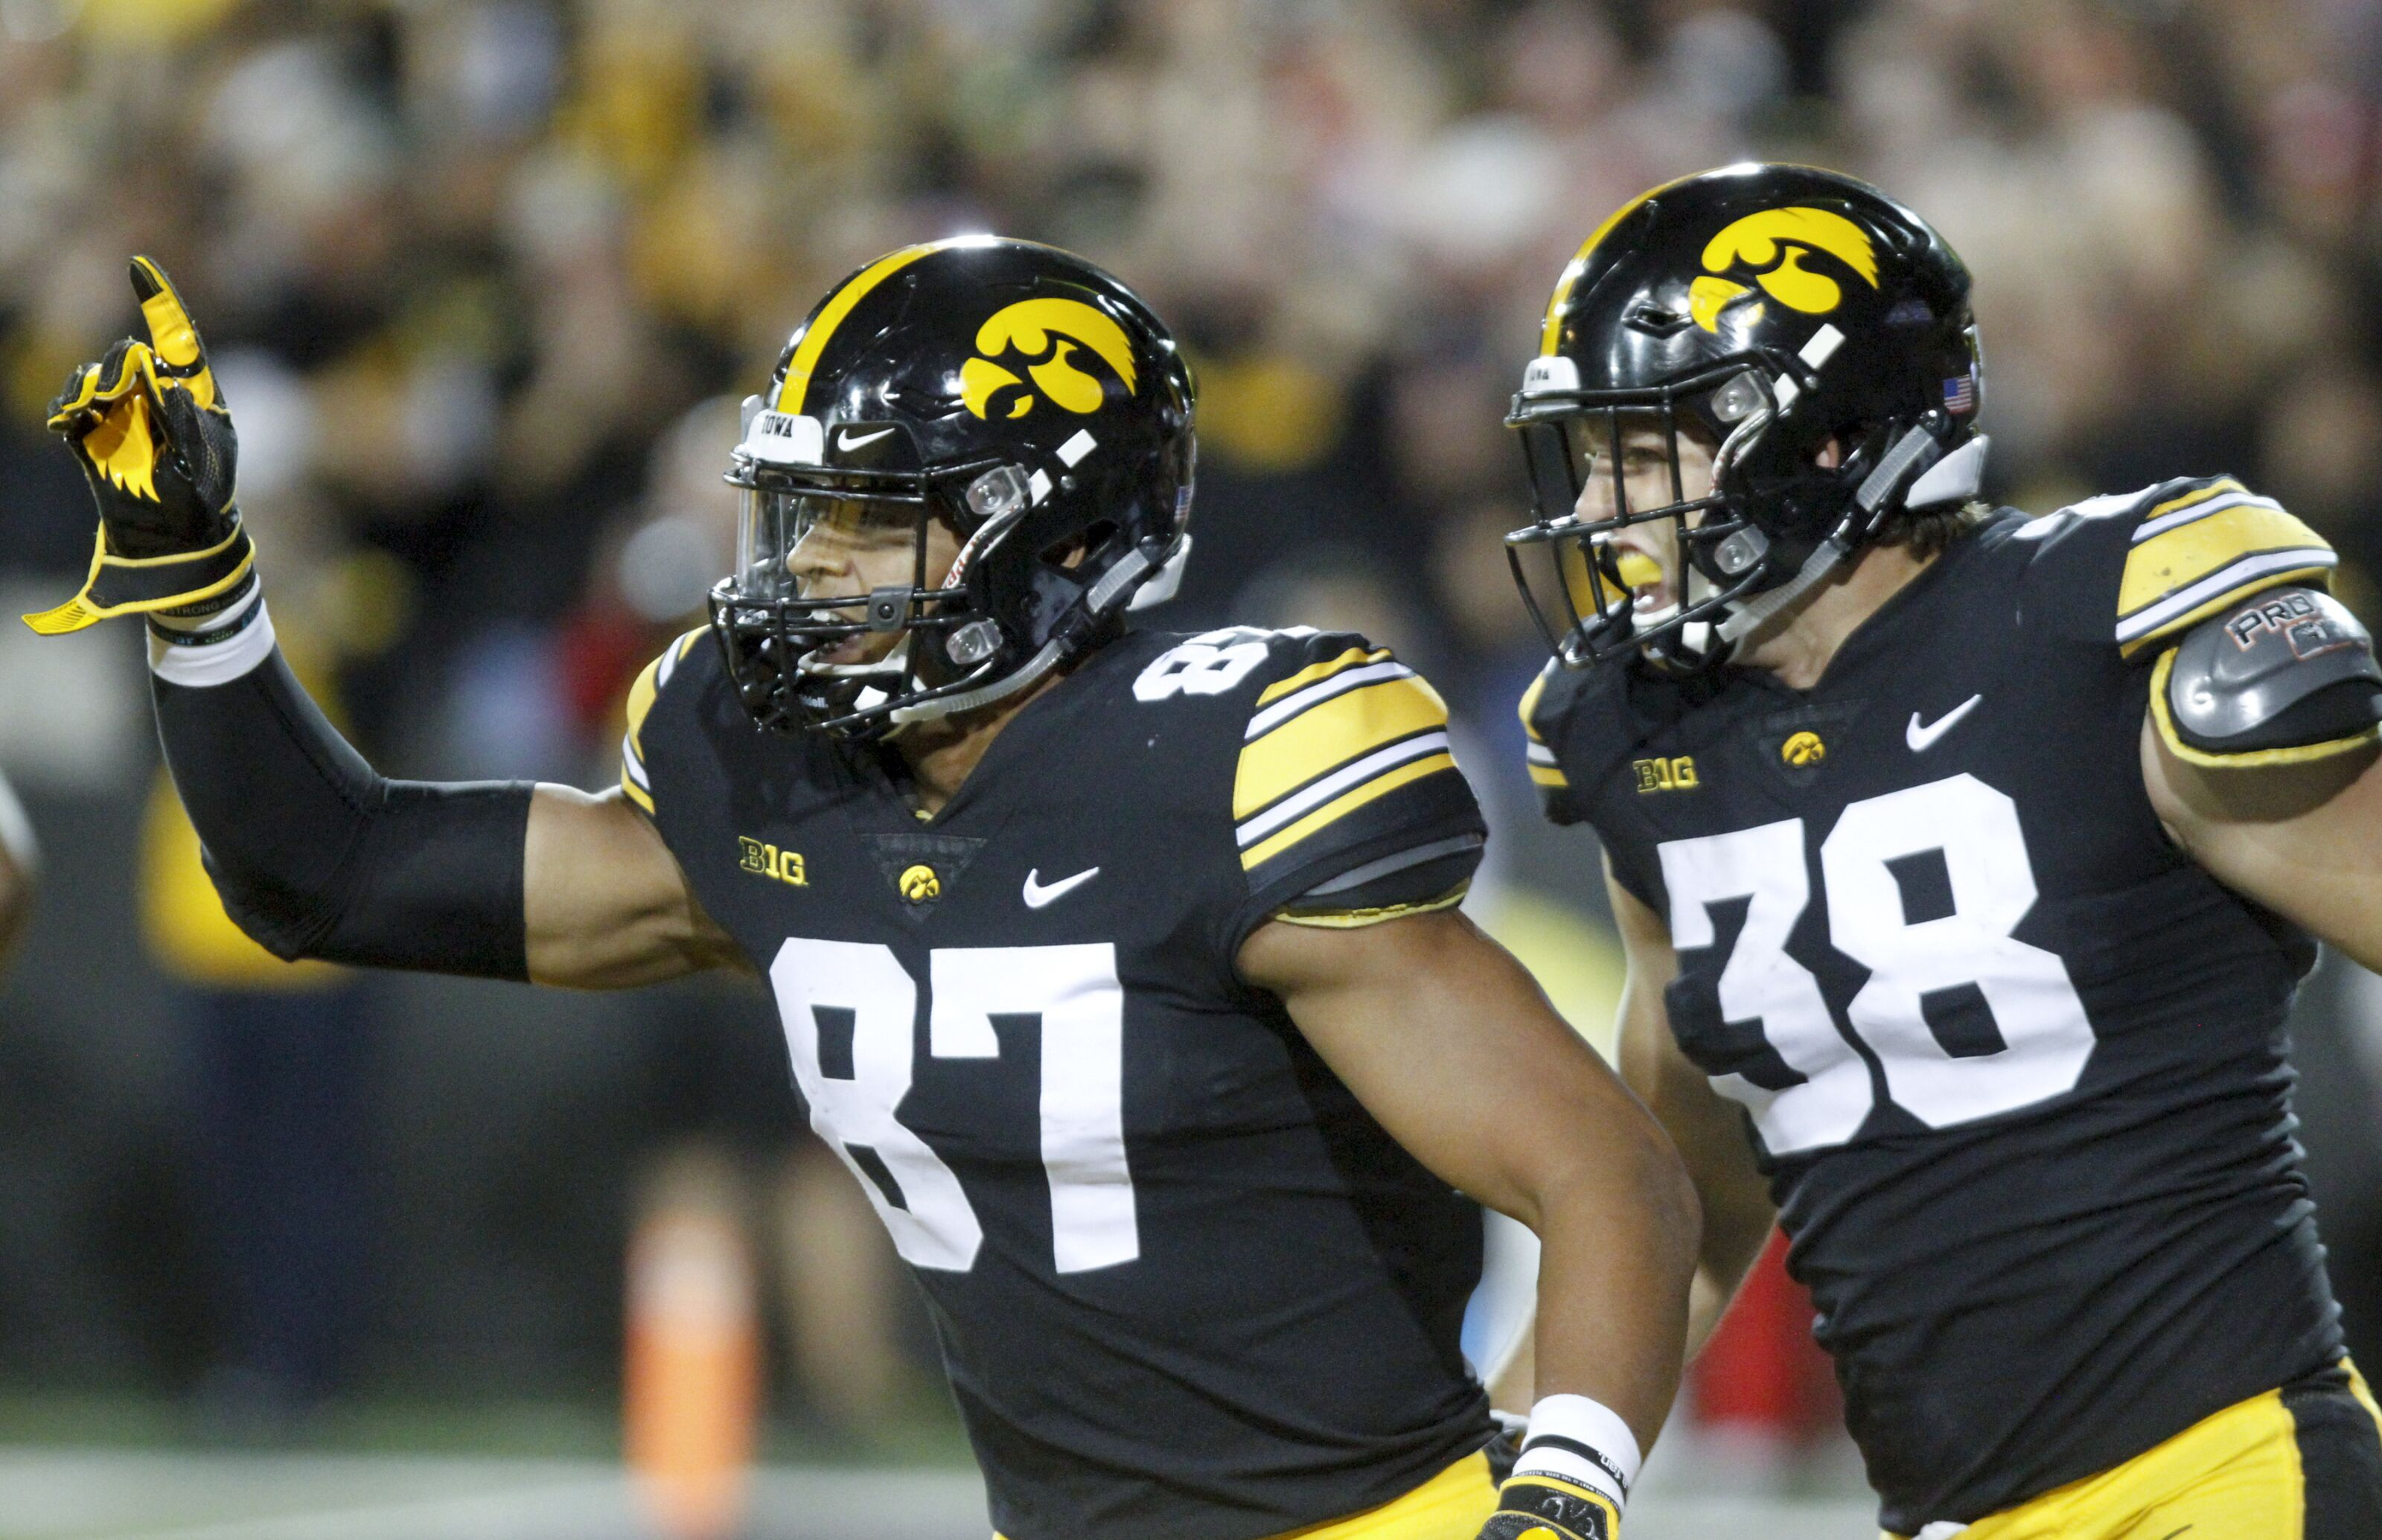 Iowa Football Three Replacements For Fant And Hockenson